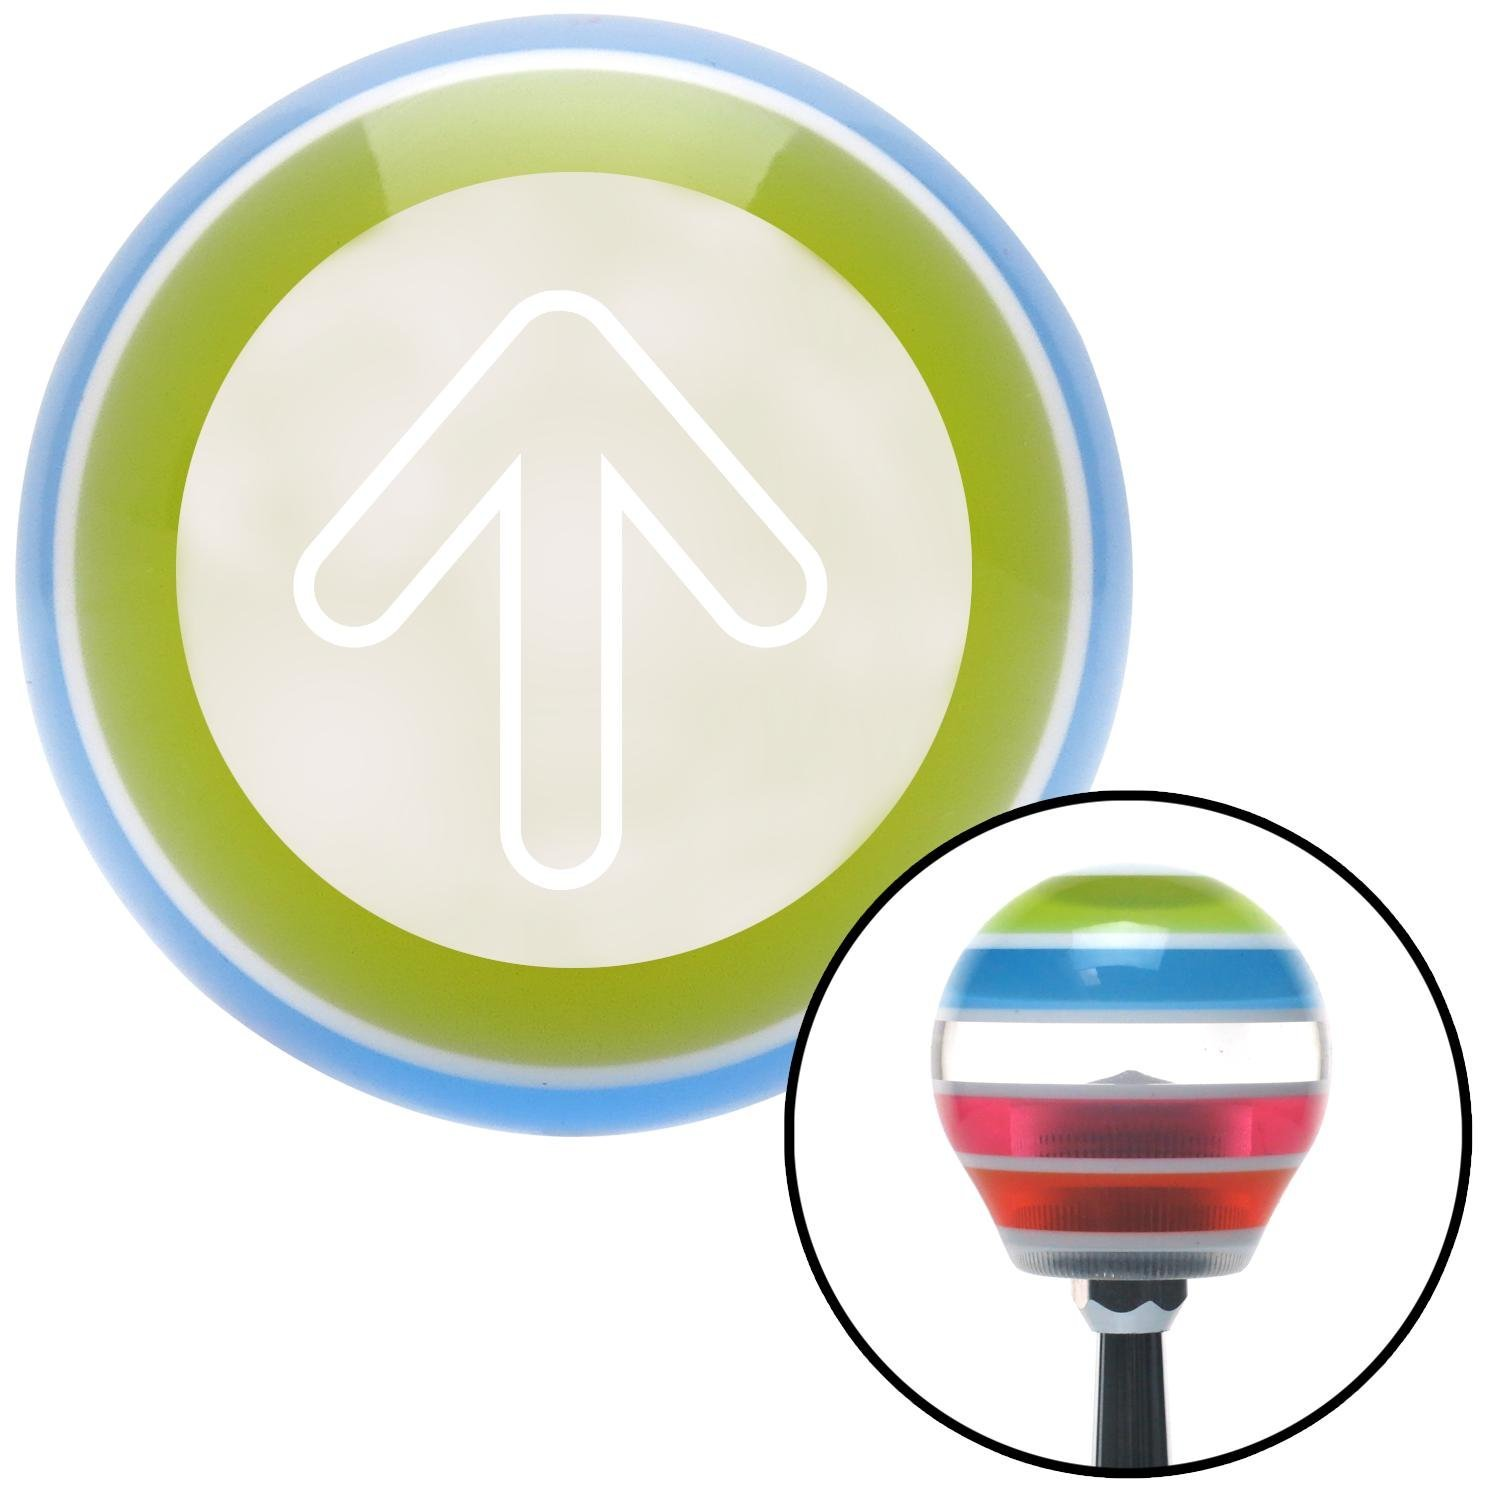 American Shifter 130895 Stripe Shift Knob with M16 x 1.5 Insert White Bubble Directional Arrow Up